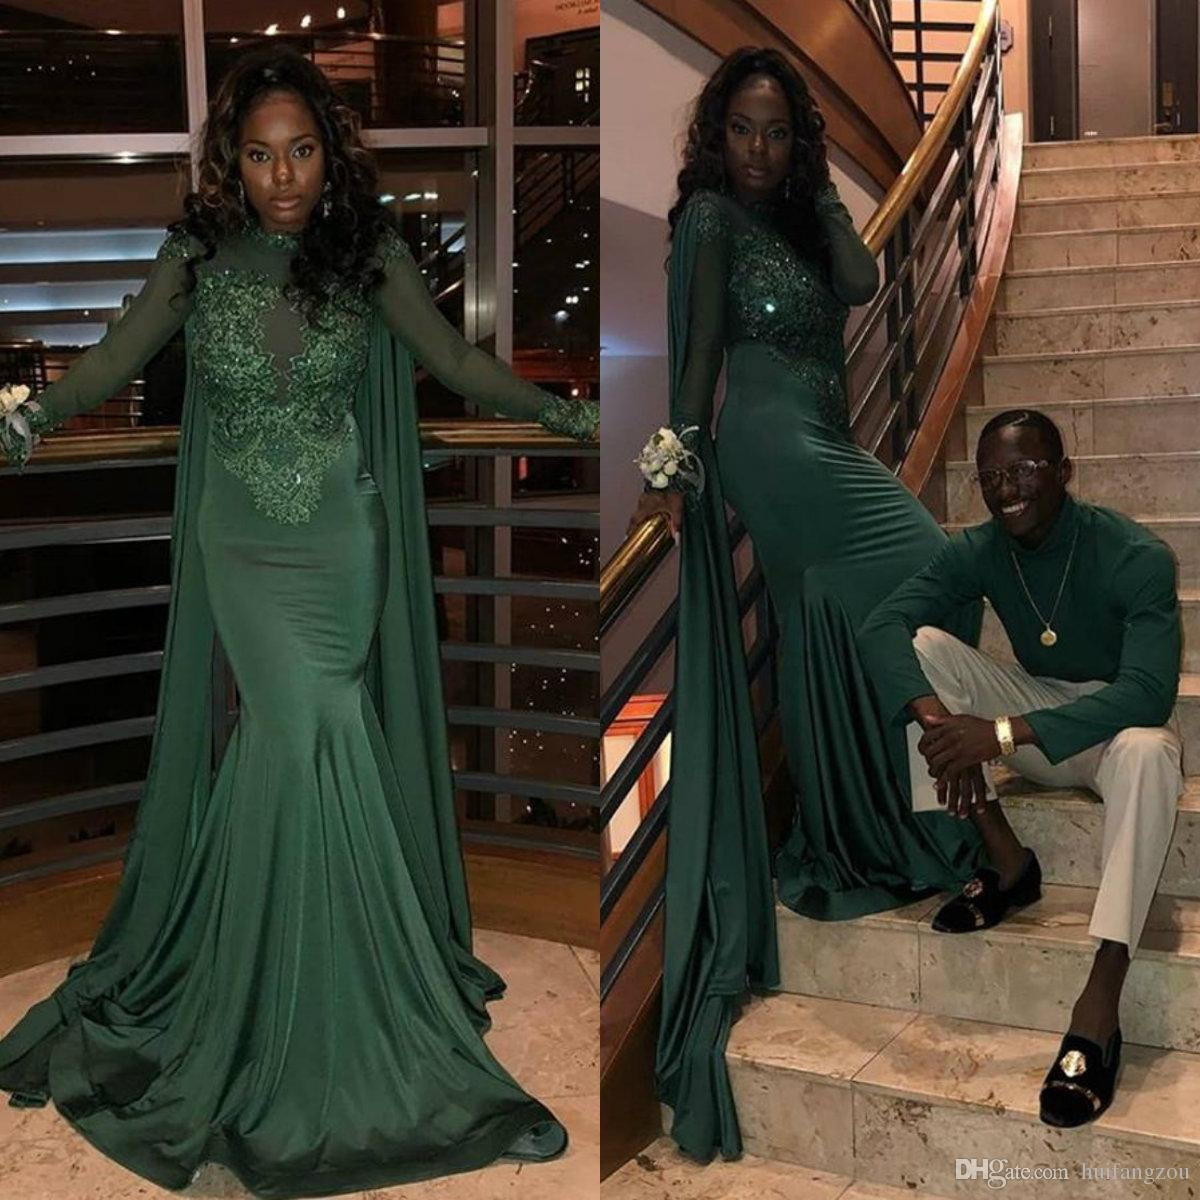 5384a5e7636ac Emerald Green Mermaid Prom Dresses Arabic Dubai Long Sleeve Lace Appliques  Illusion Sequined Evening Dress Black Girls Formal Party Dresses Online Prom  ...